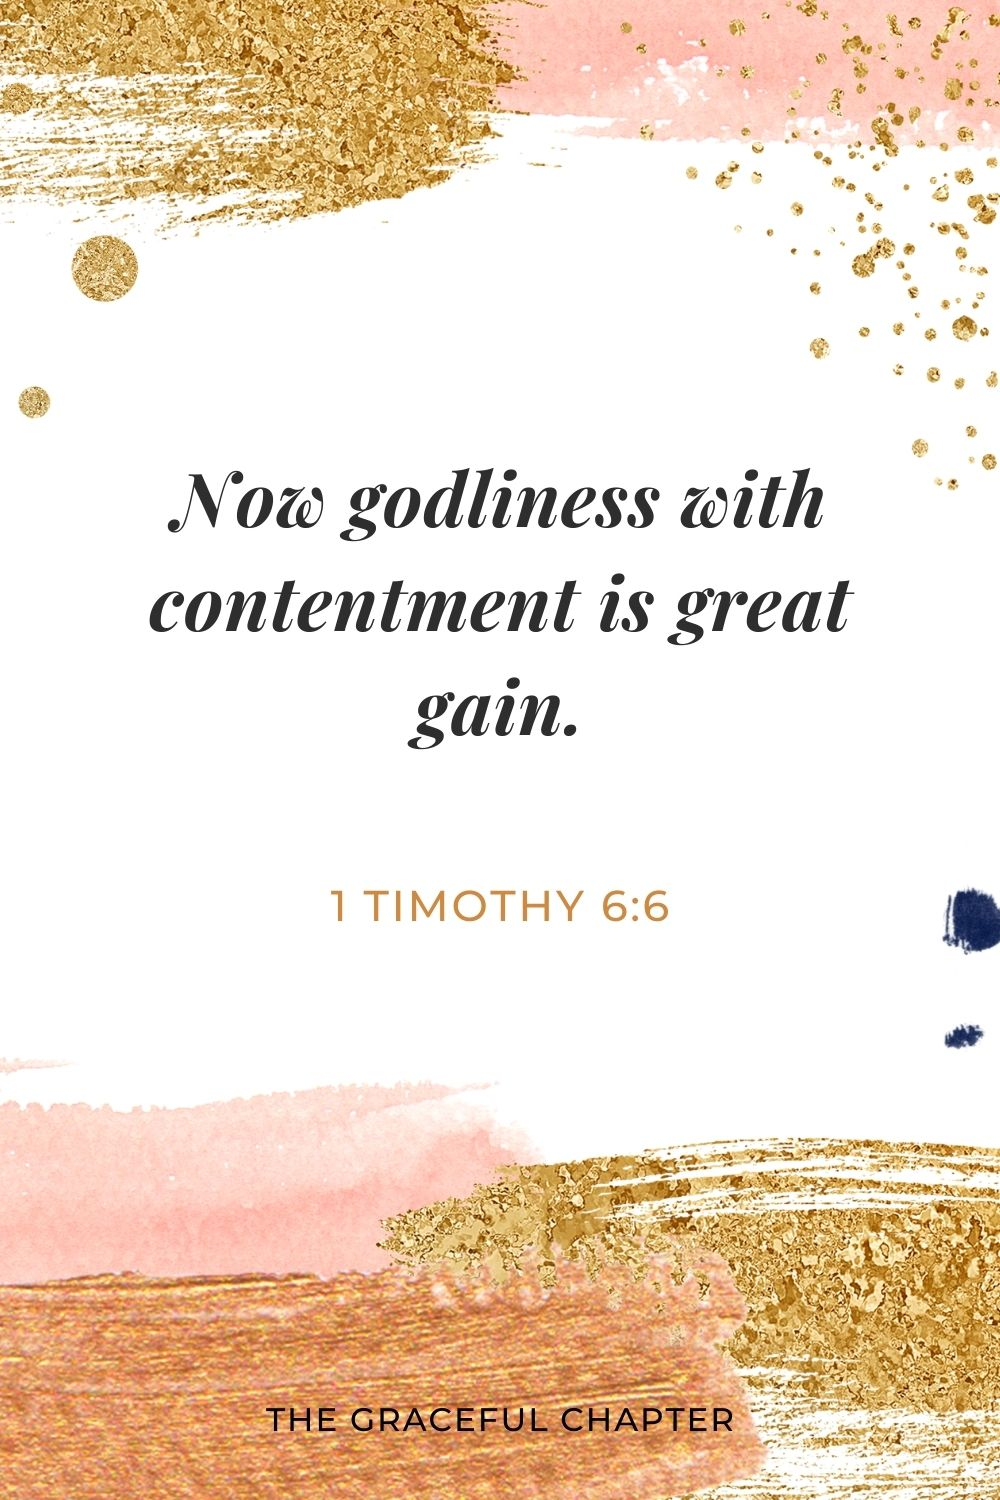 Now godliness with contentment is great gain. 1 Timothy 6:6